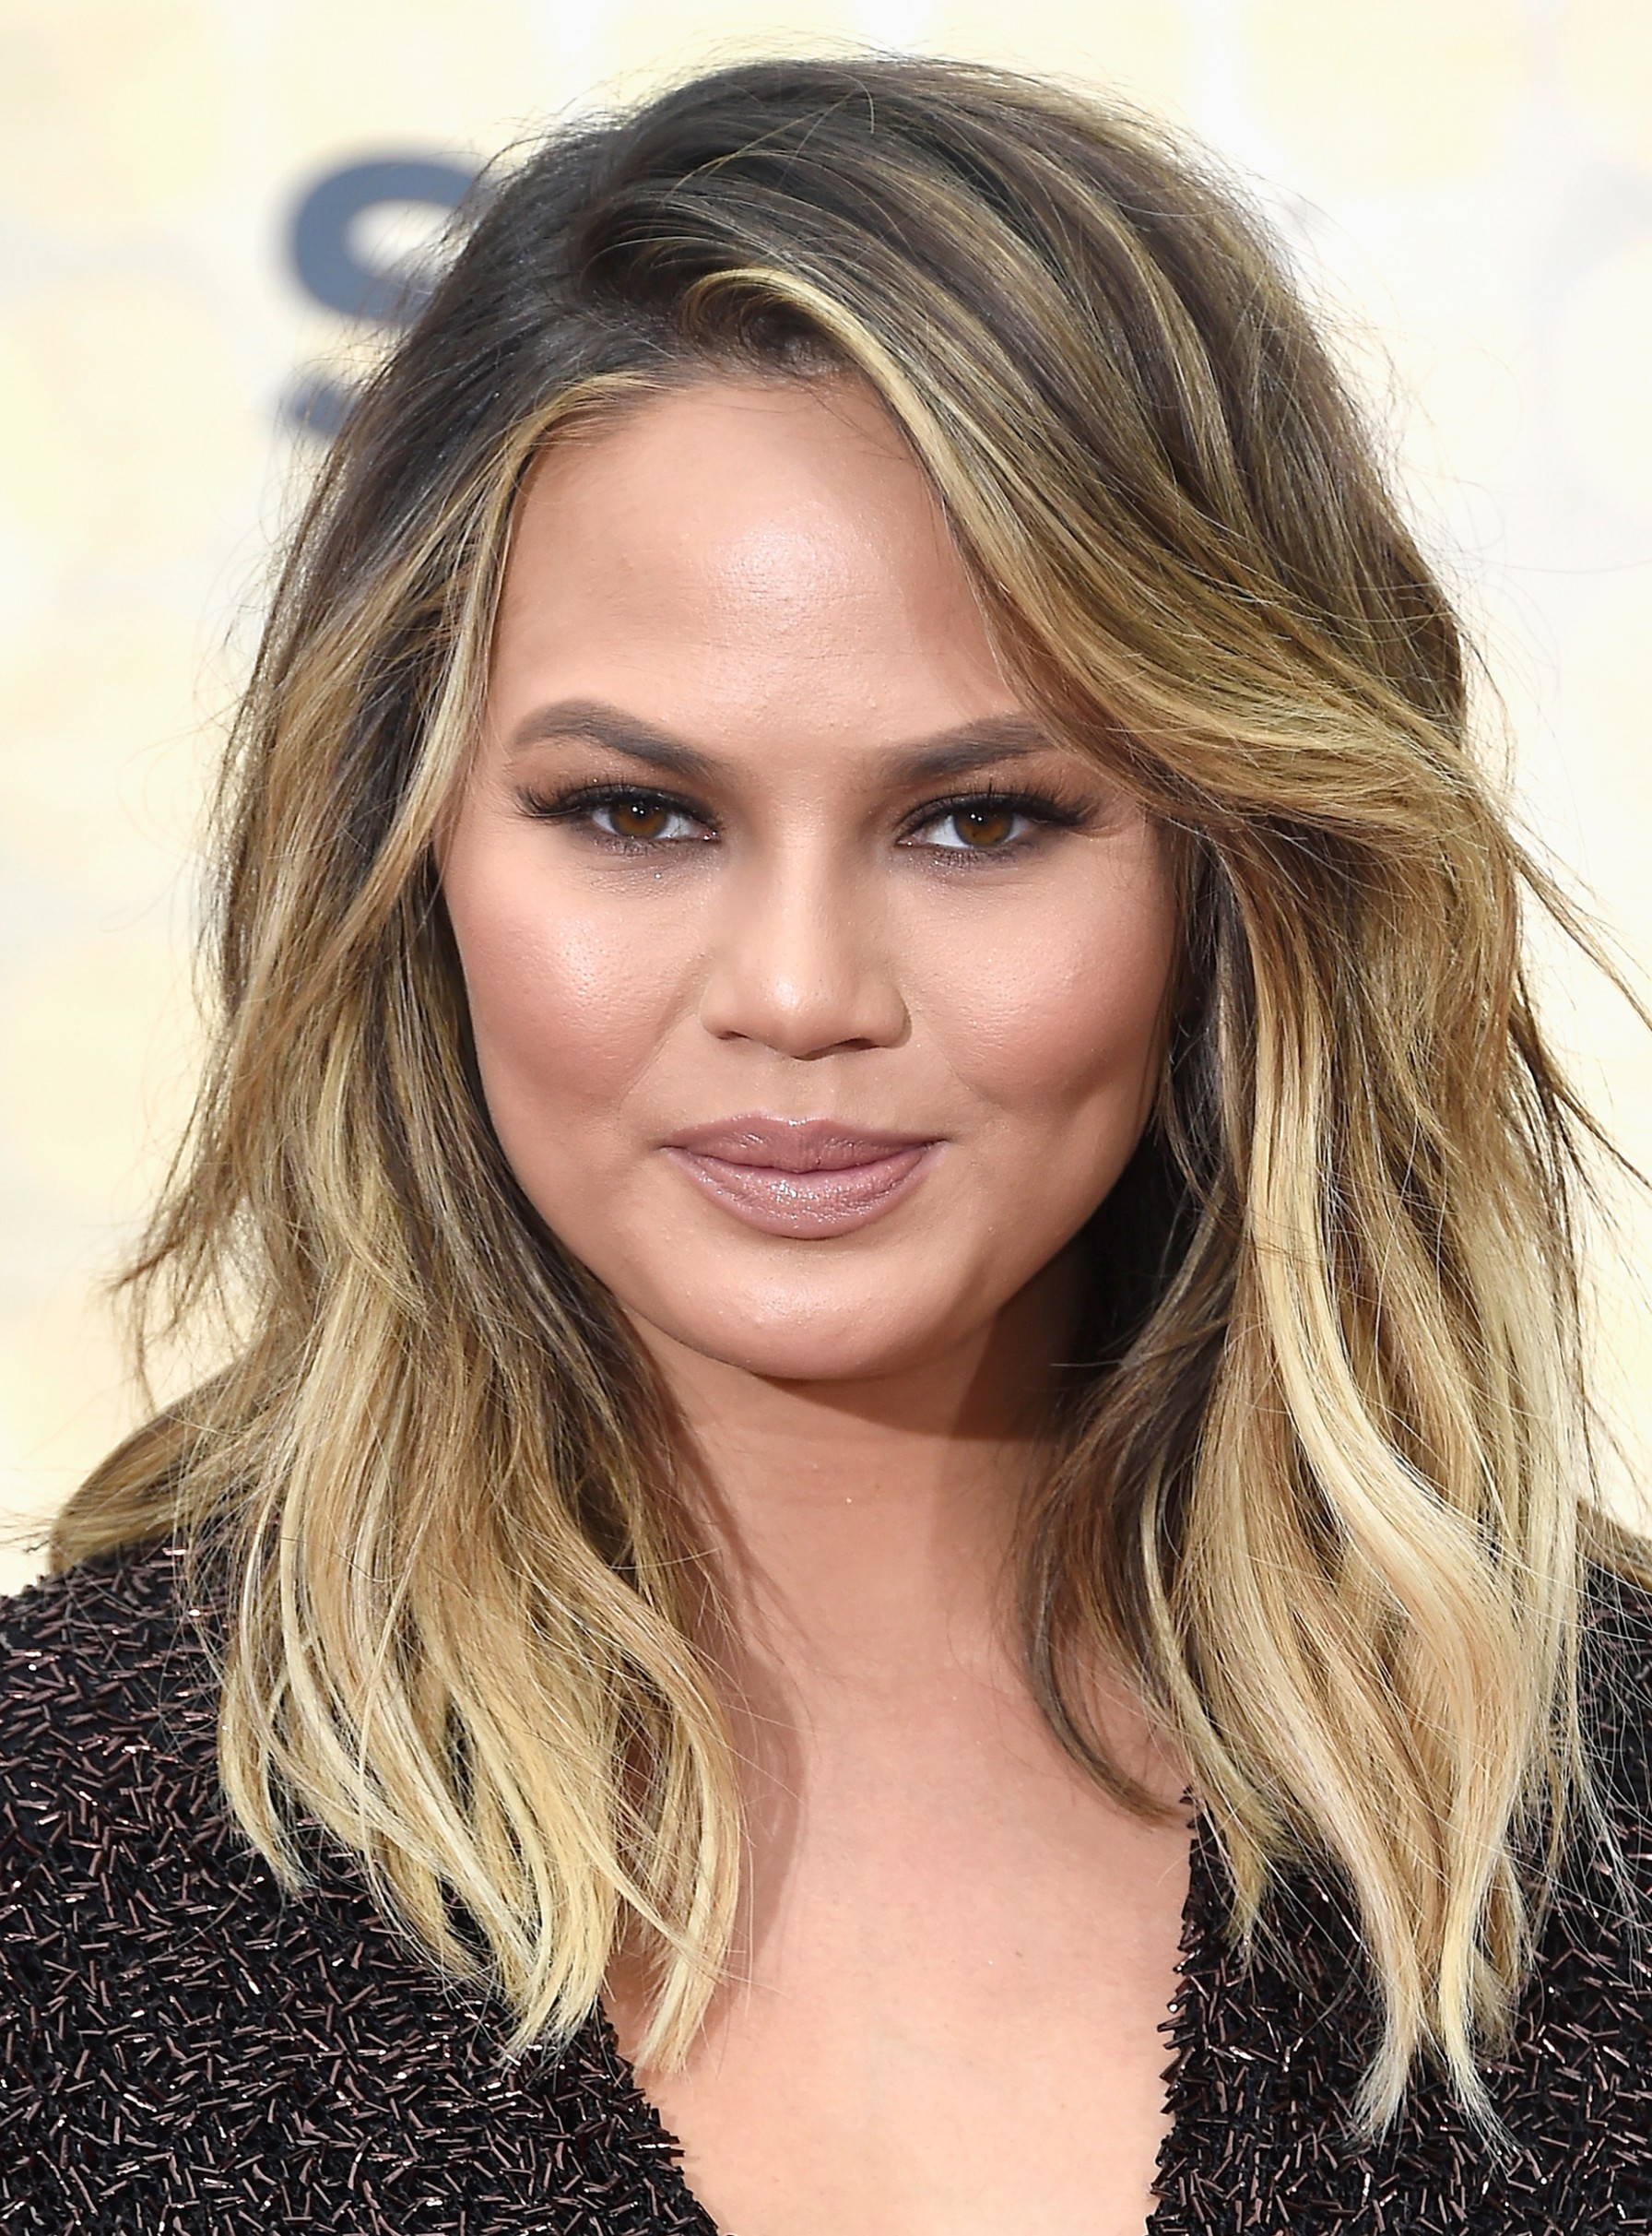 8 Best Hairstyles For Round Faces Haircut For Round Face